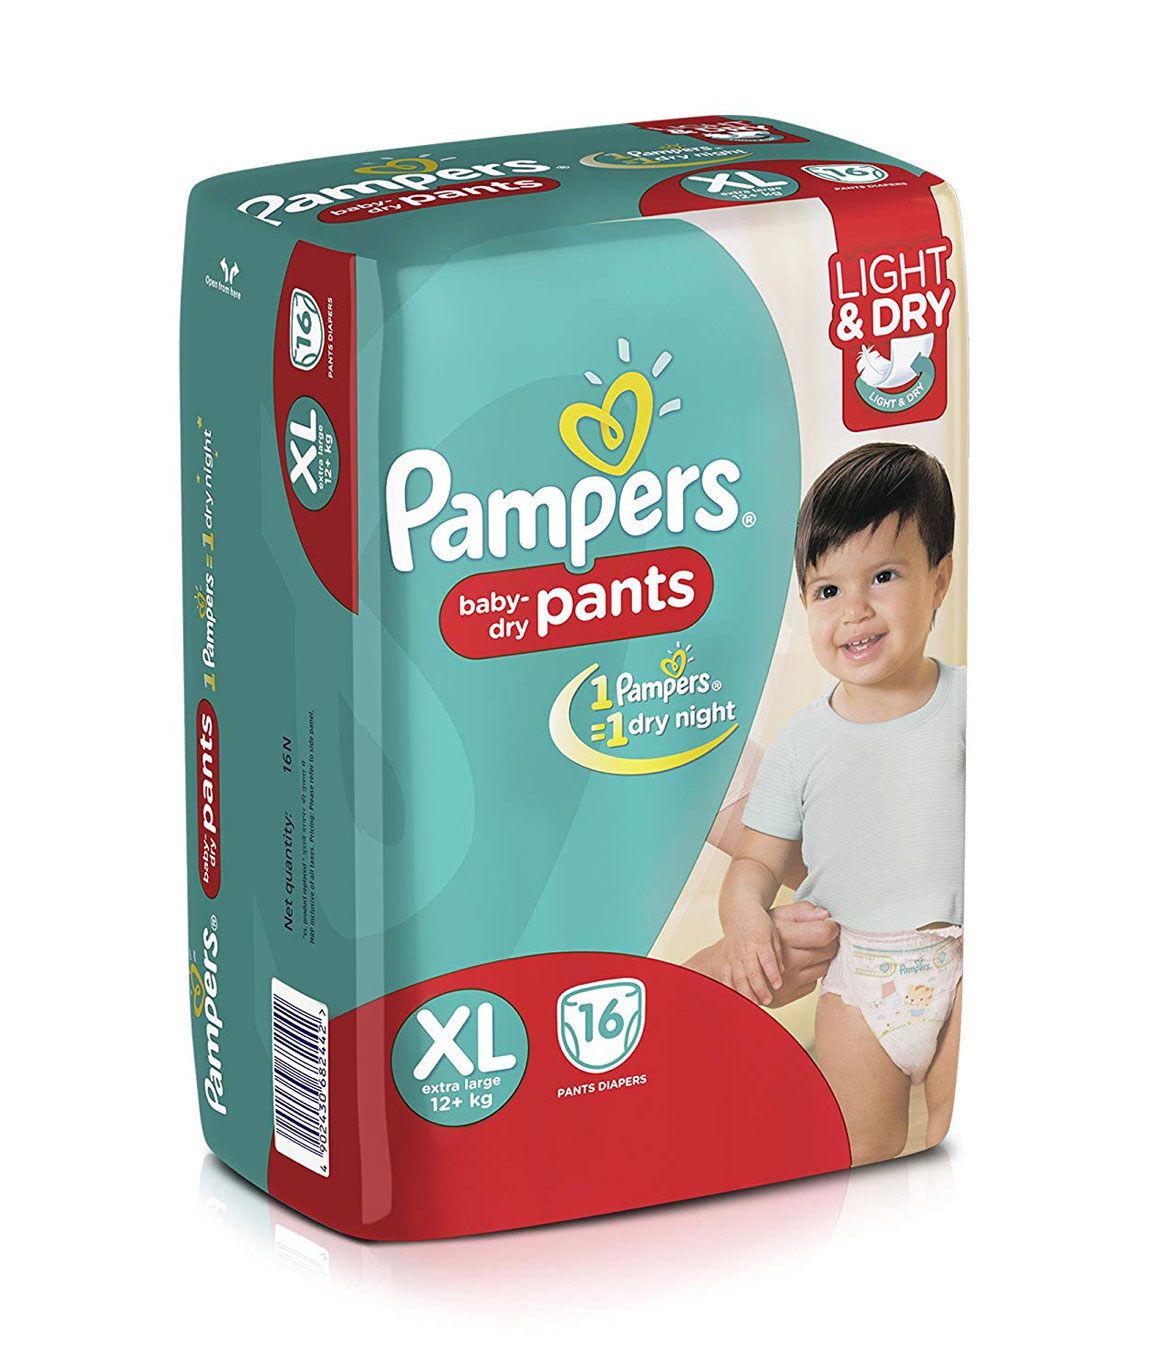 Pampers Extra Large Diaper Pants (16 Count)